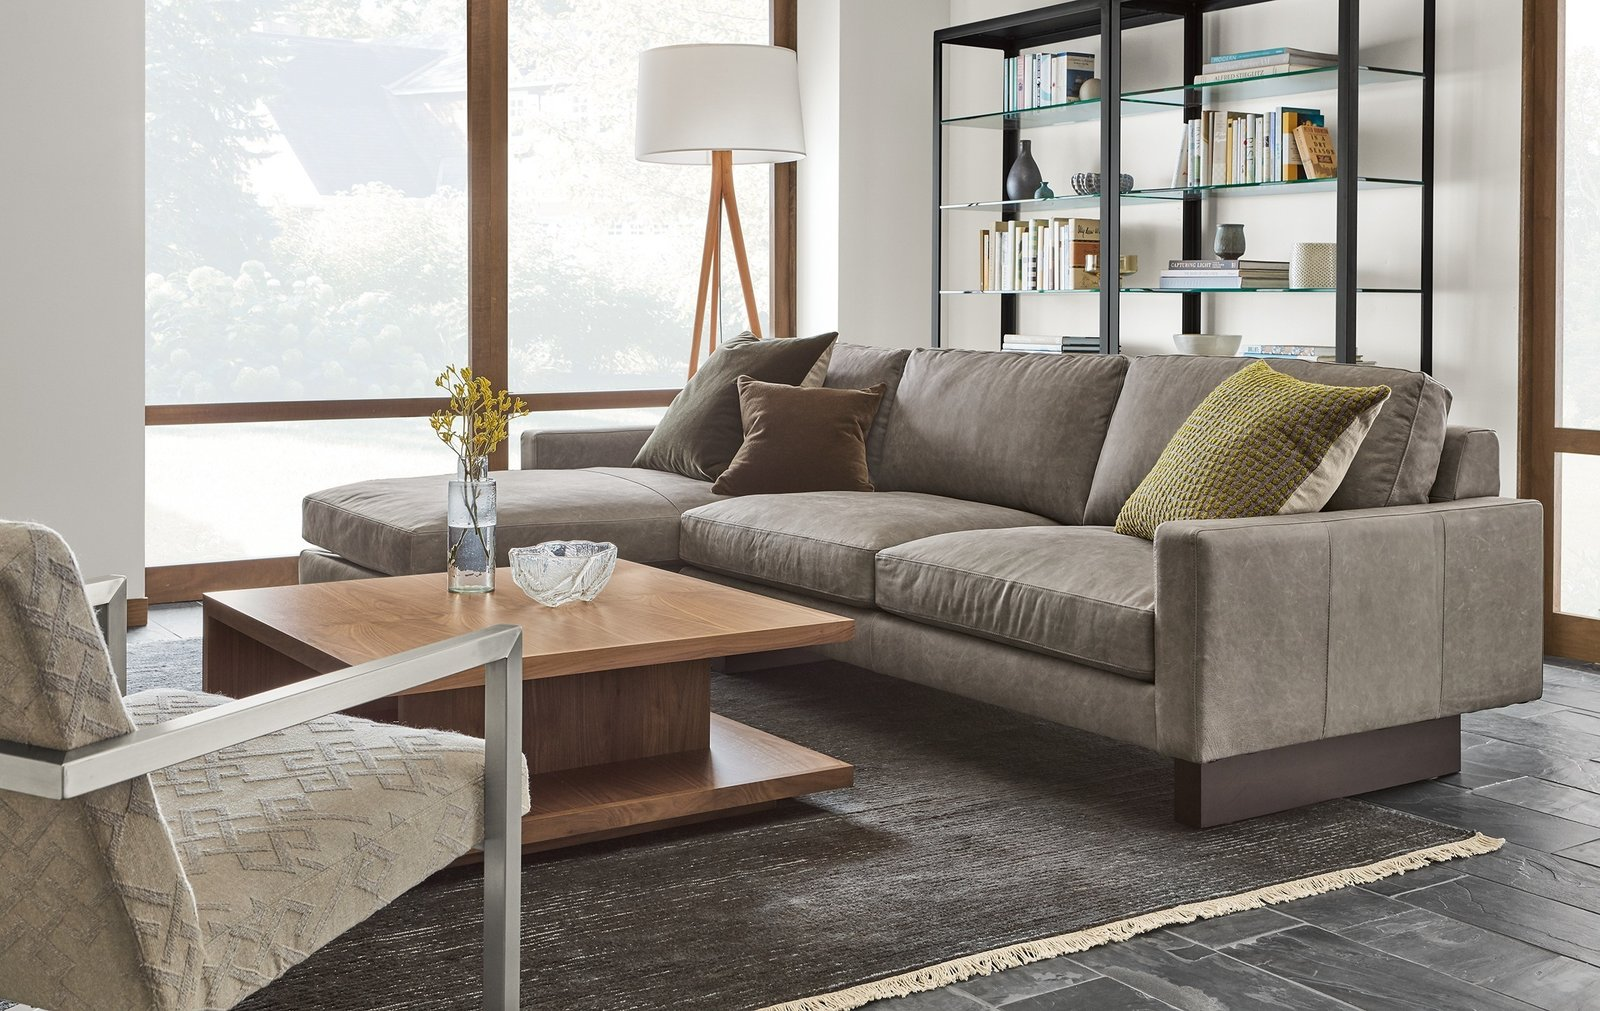 Designed to relax over time, the cushions of Hess will develop a more casual look while still maintaining their plush feel.   Modern Living Room Furniture by Room & Board